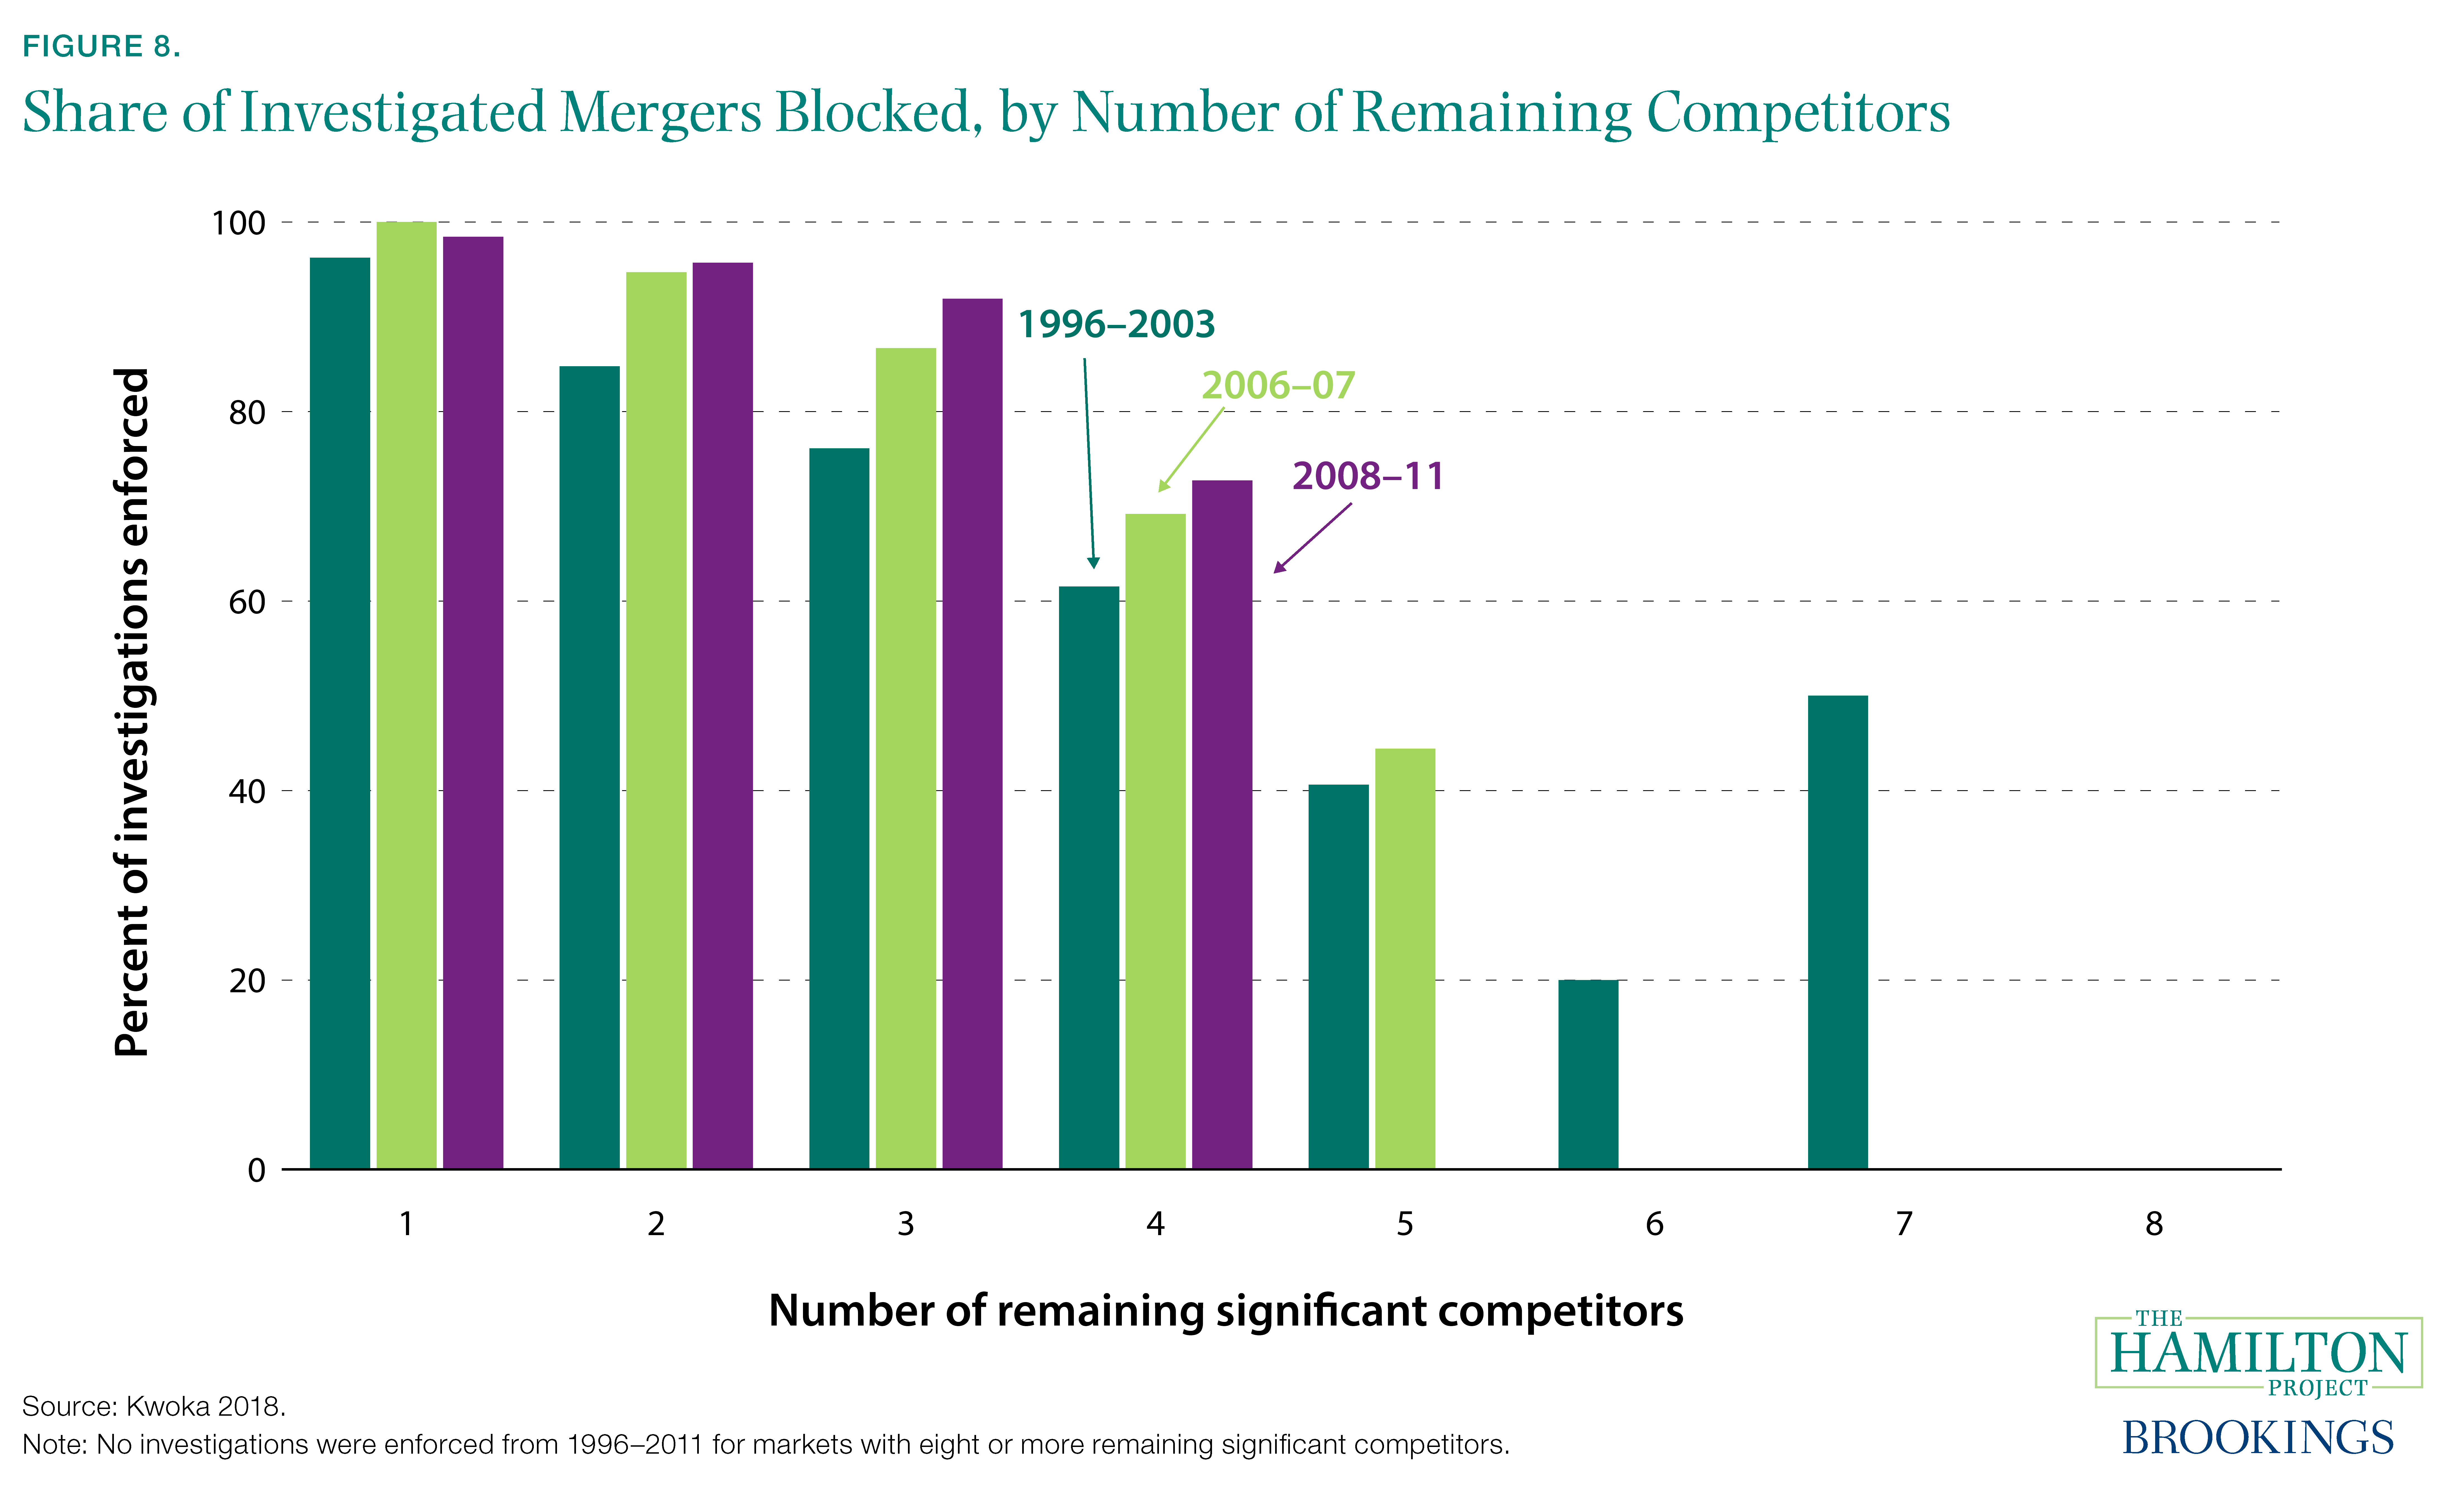 Figure 8. Share of Investigated Mergers Blocked, by Number of Remaining Competitors